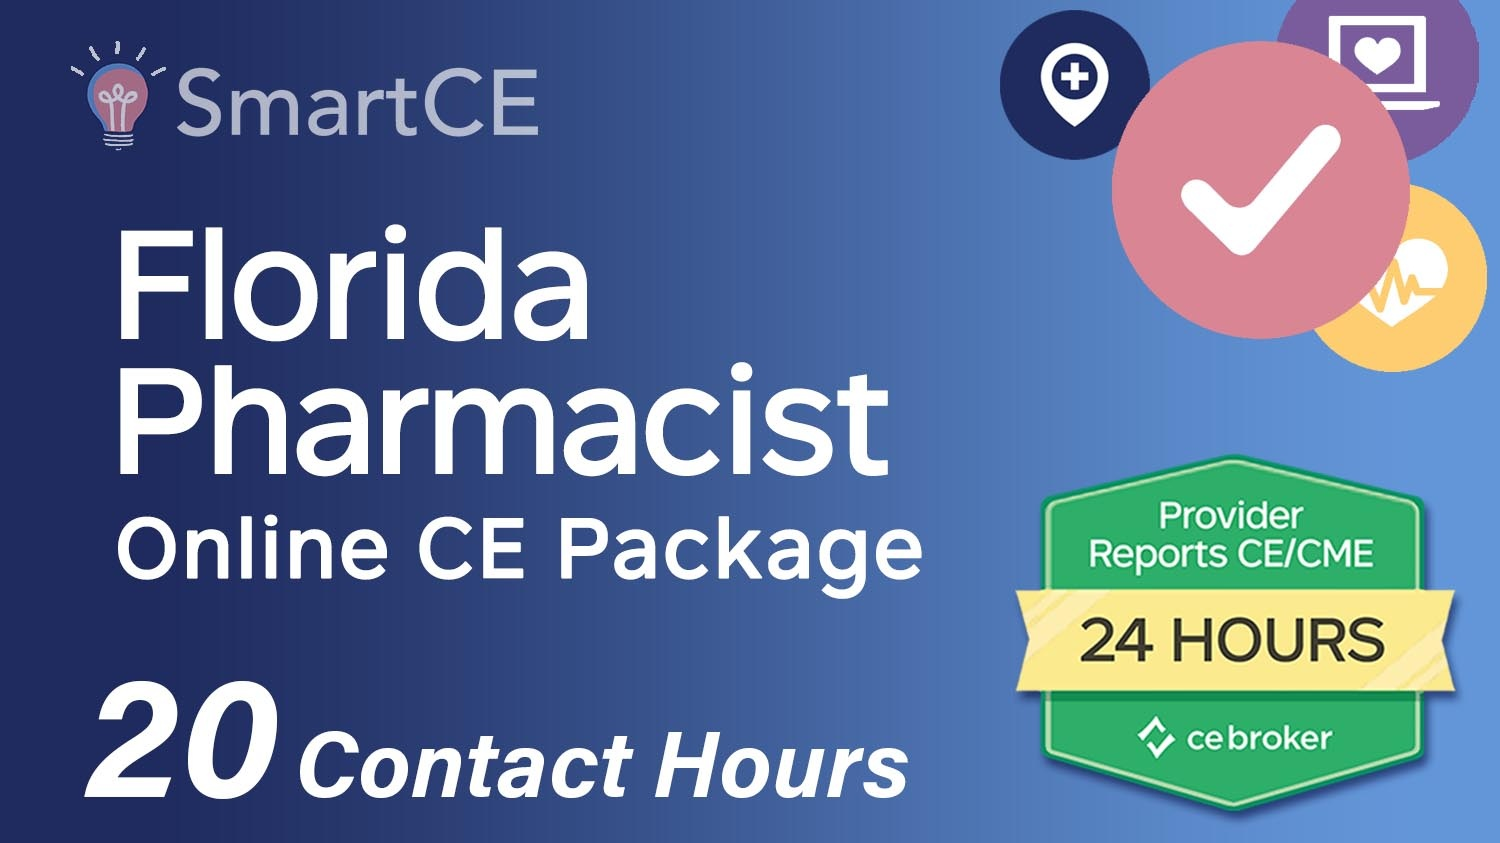 Florida Pharmacist Online CE Bundle - 20 Contact Hours/20-619940/20-588207/20-619832/20-599689/20-579245/20-704420